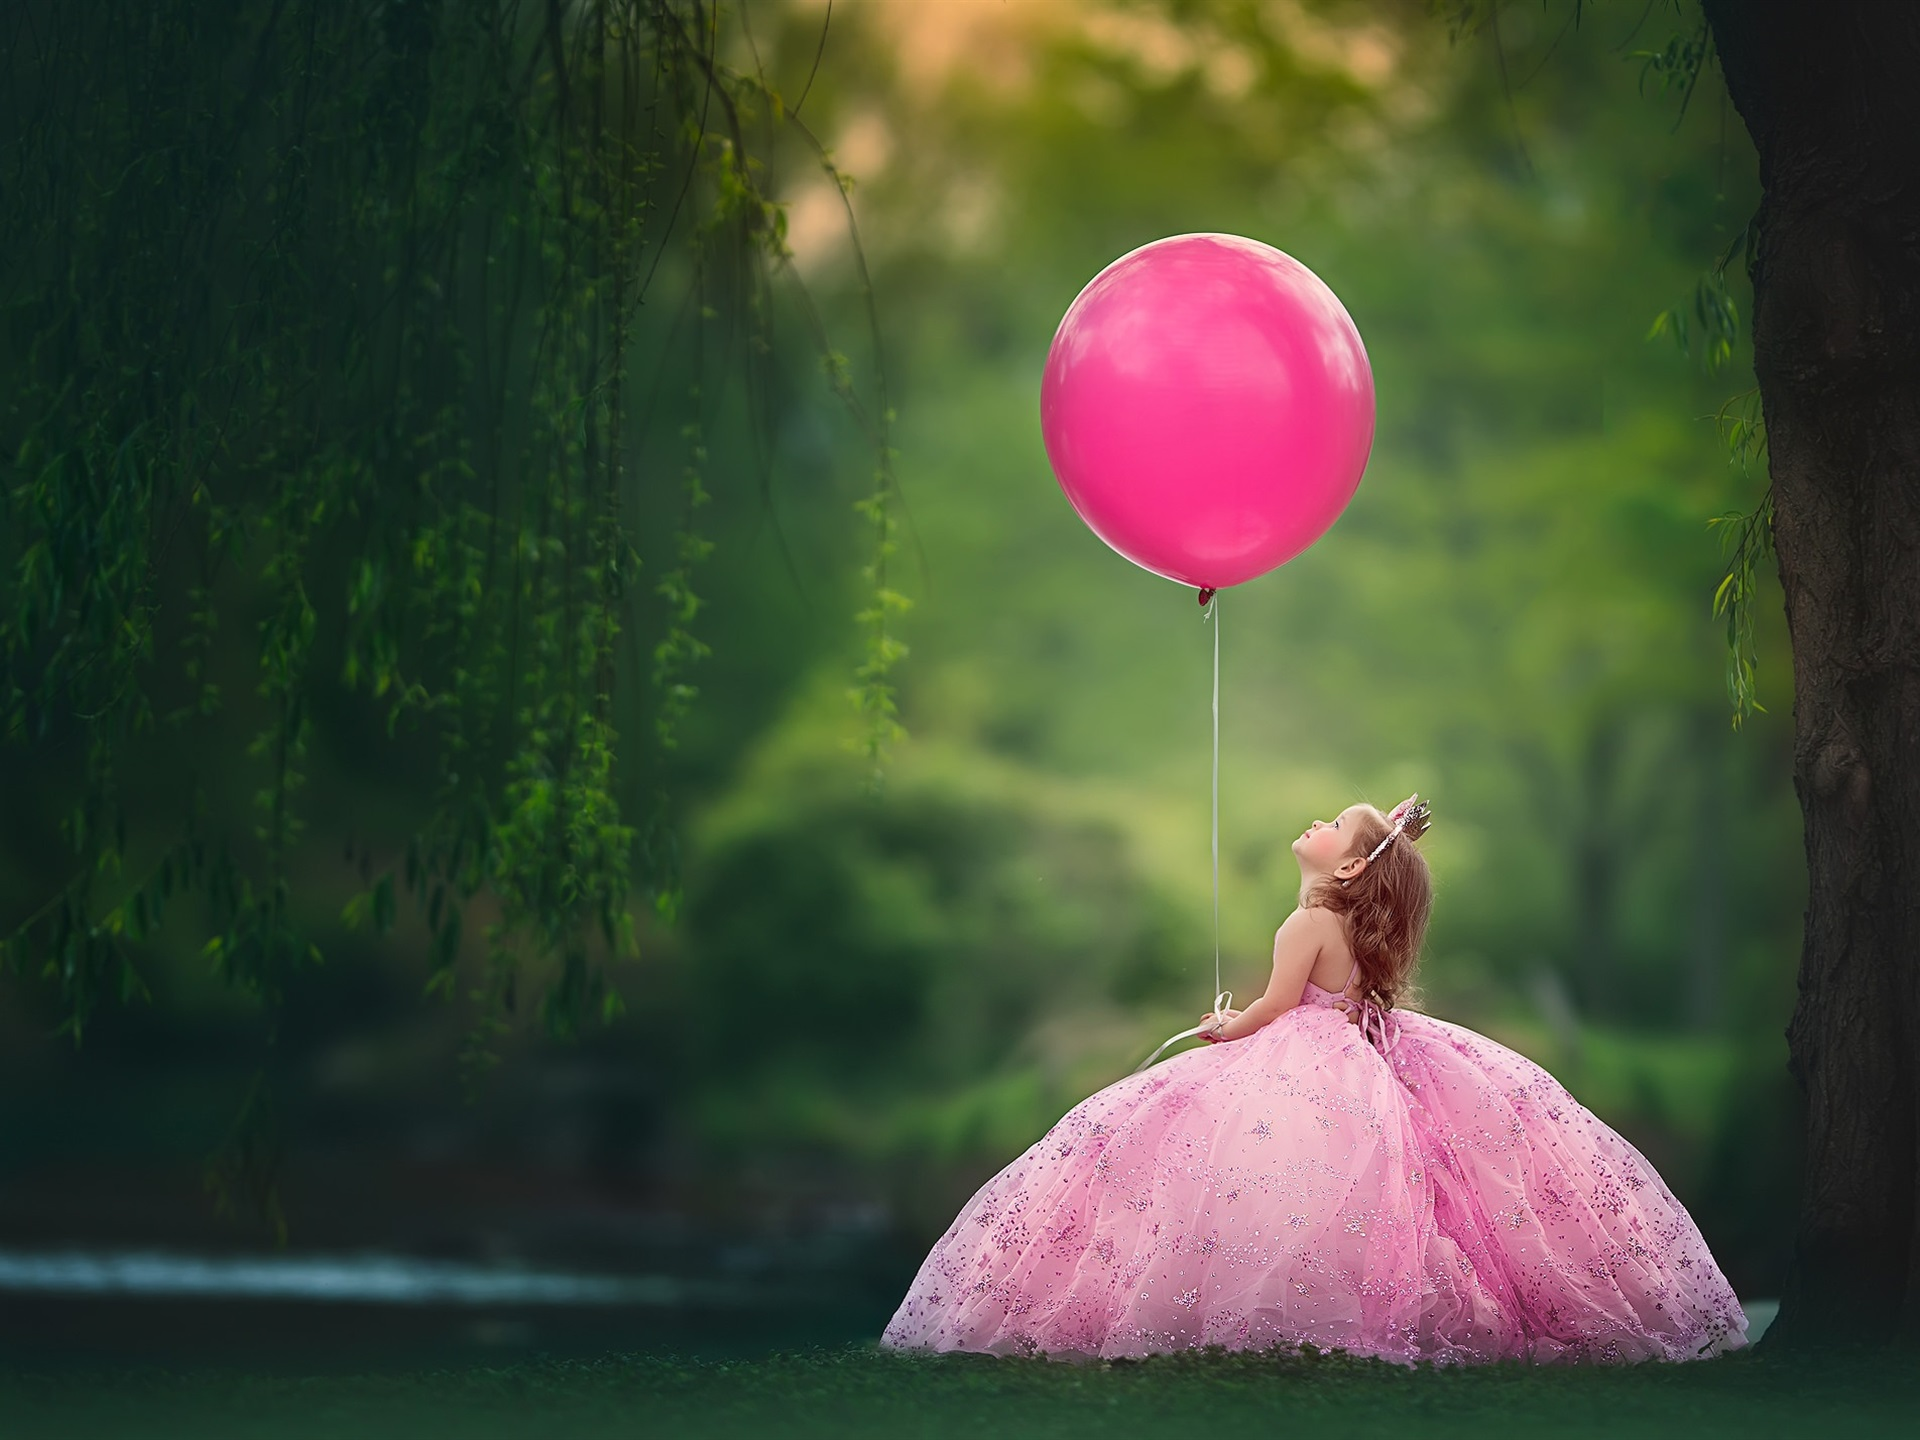 Wallpaper Little Child Girl Play A Pink Balloon 1920x1440 HD Picture